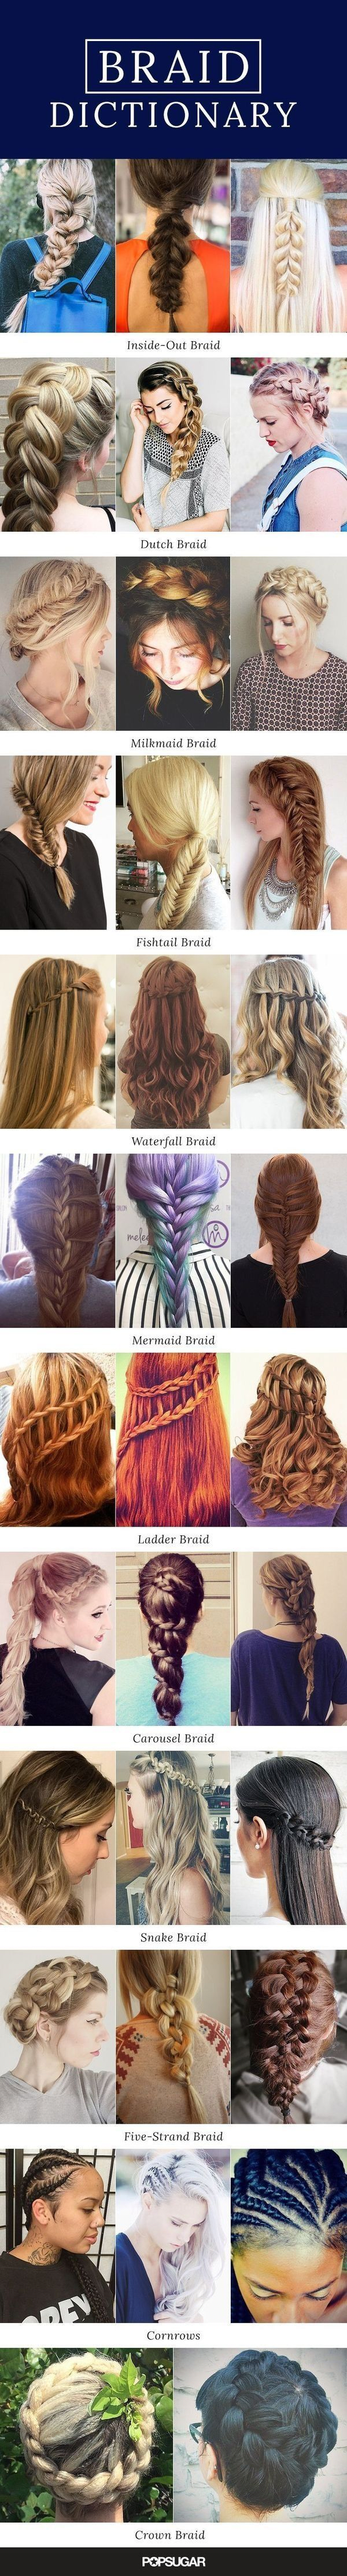 There are so many different braids out there — how many can you create?